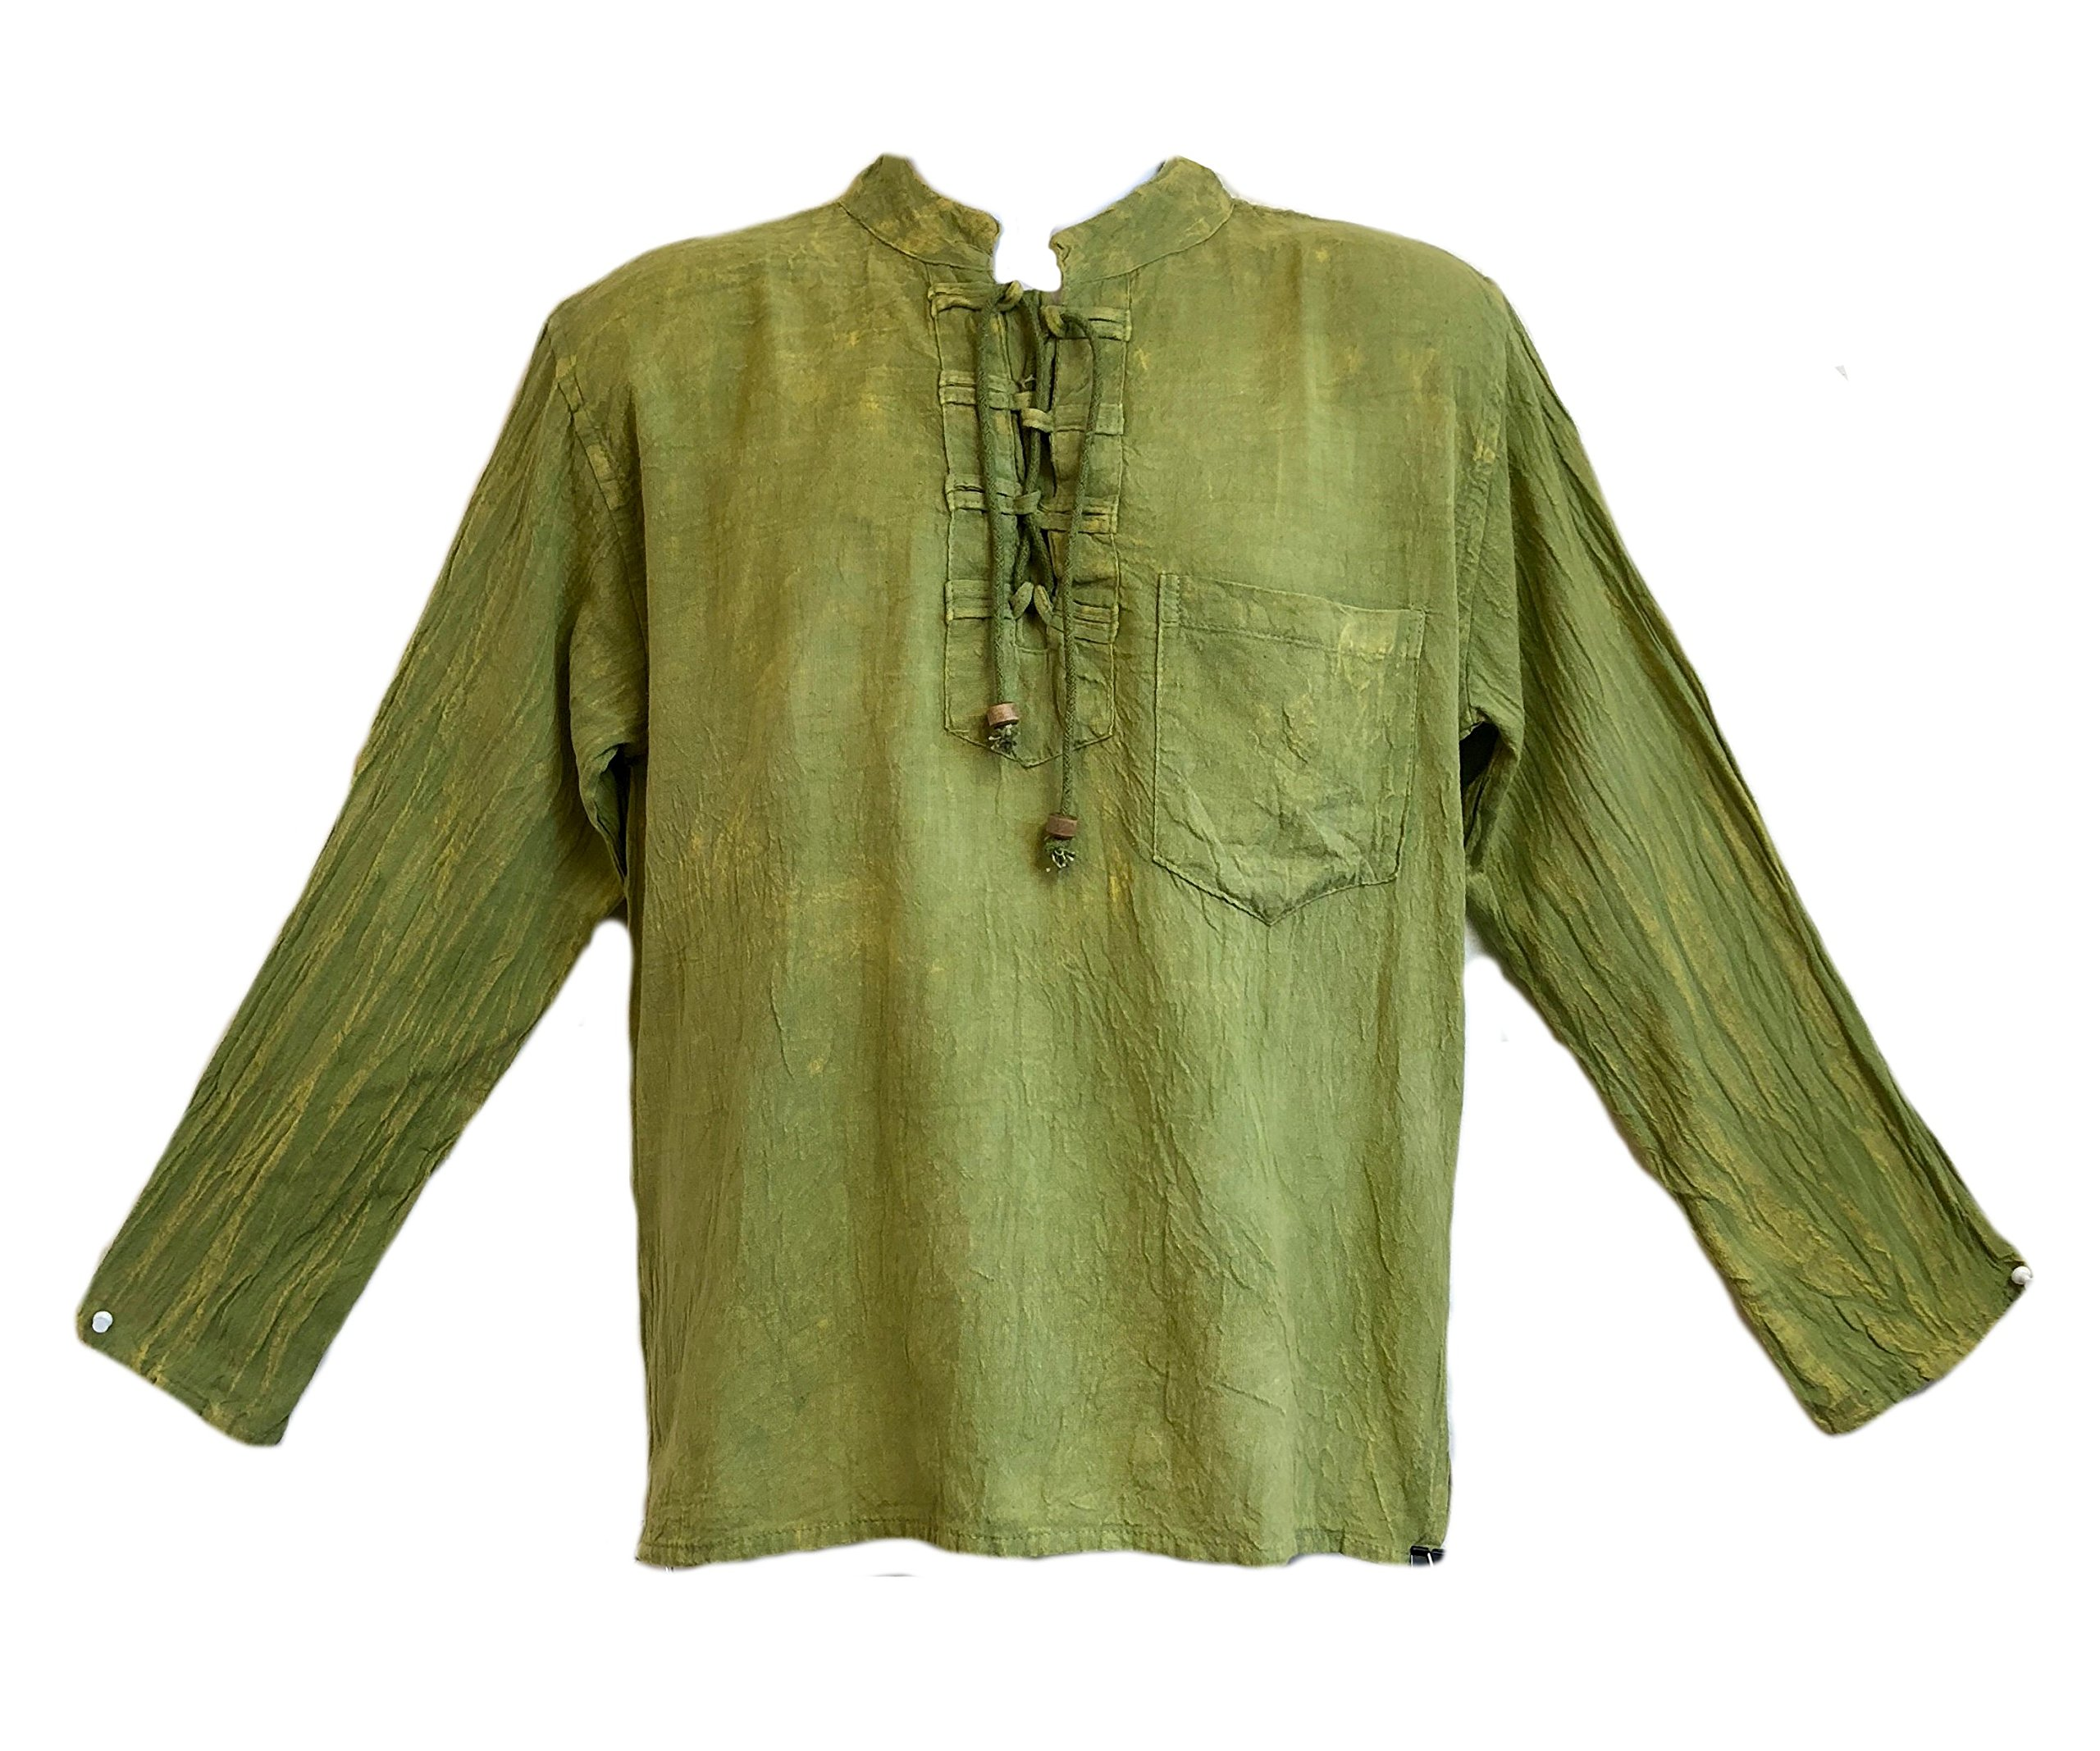 Yak & Yeti Men's Kurta Stone Washed Lightweight Cotton Embroidered Mandarin Style Collar (XXL, Green Lace up)